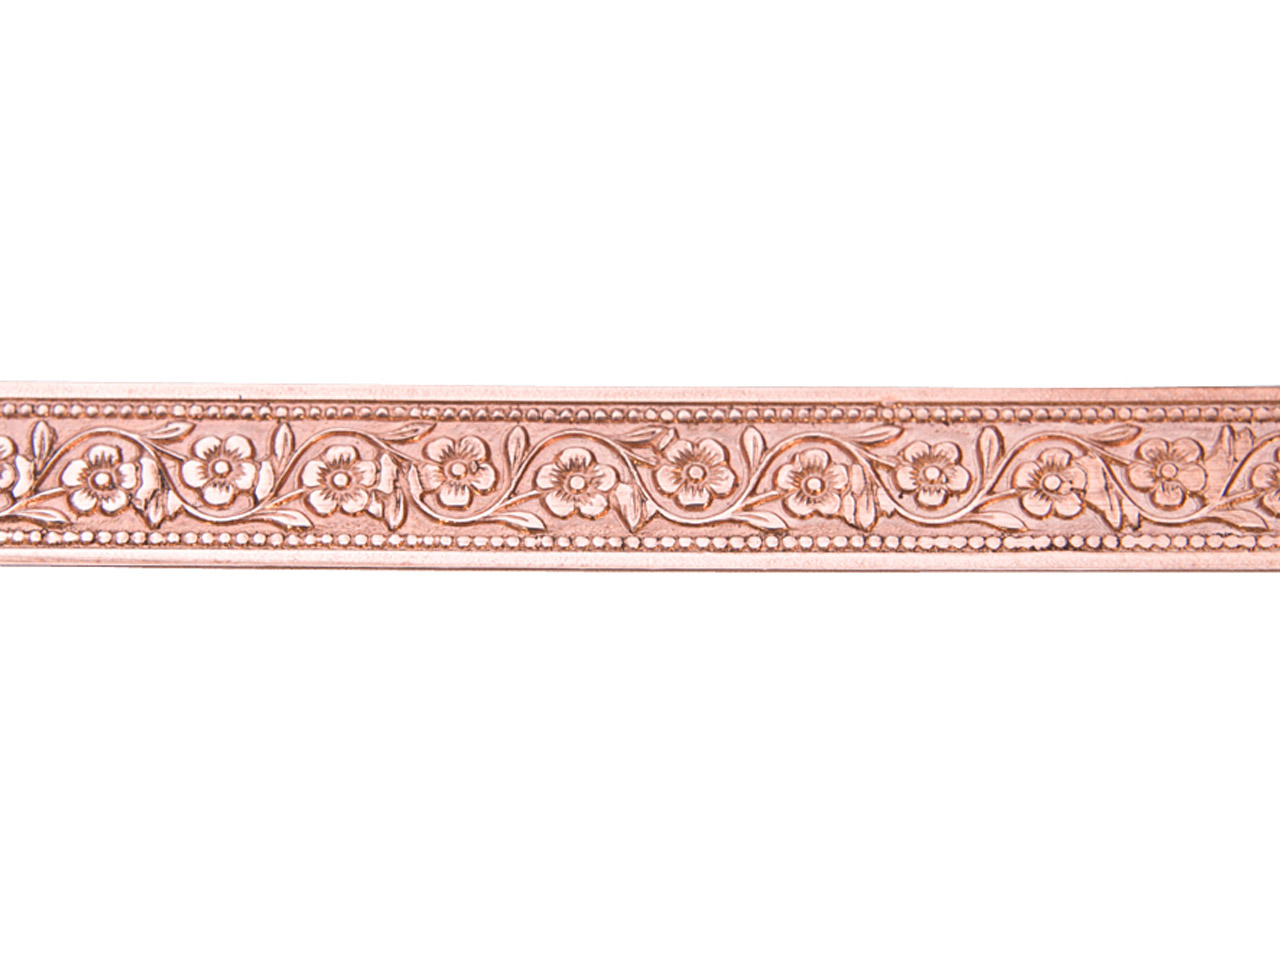 Copper Garden Flower Patterned Wire 0.5mm X 7.9mm X 910mm